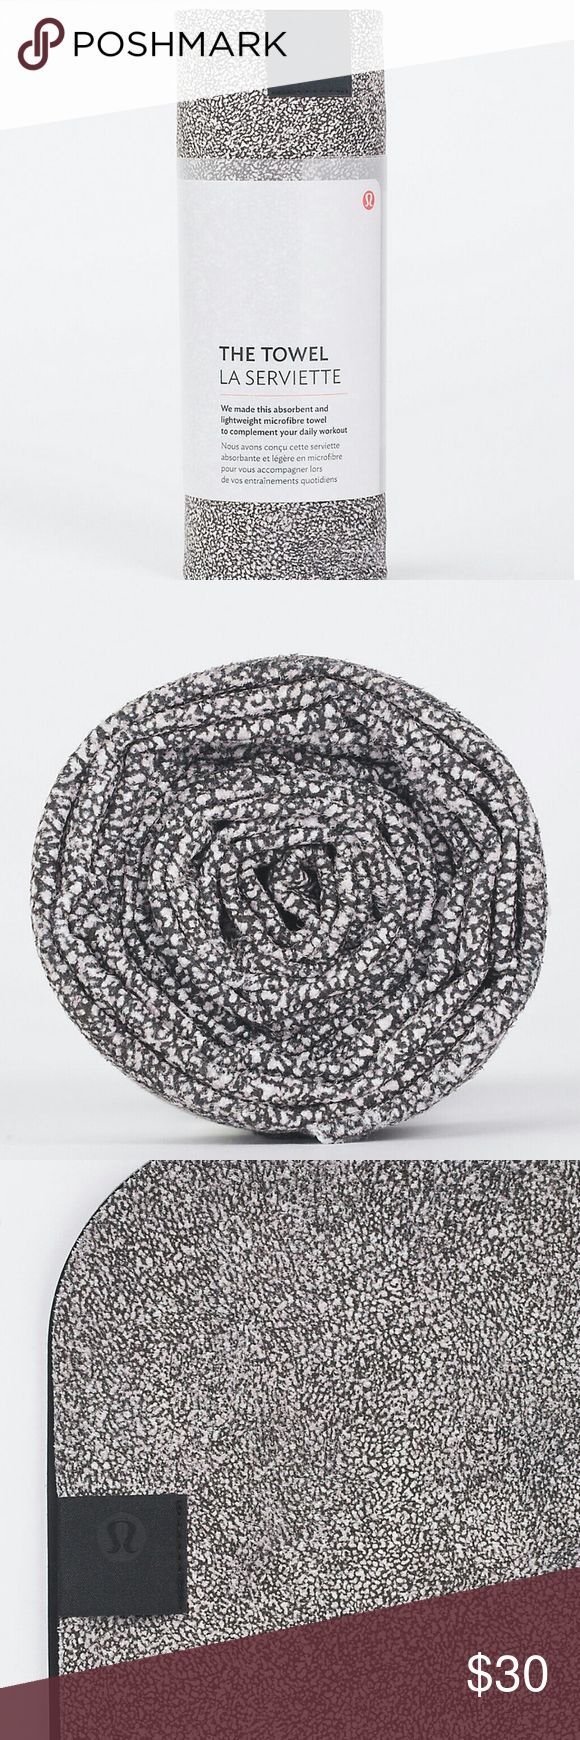 """NEW! Lululemon Yoga Mat Towel Used and carefully washed yoga mat towel. Black and white speckled. Still on sale the website. Brand is Lululemon, style """"The Towel"""", selling for over $40 online. Lululemon Accessories"""